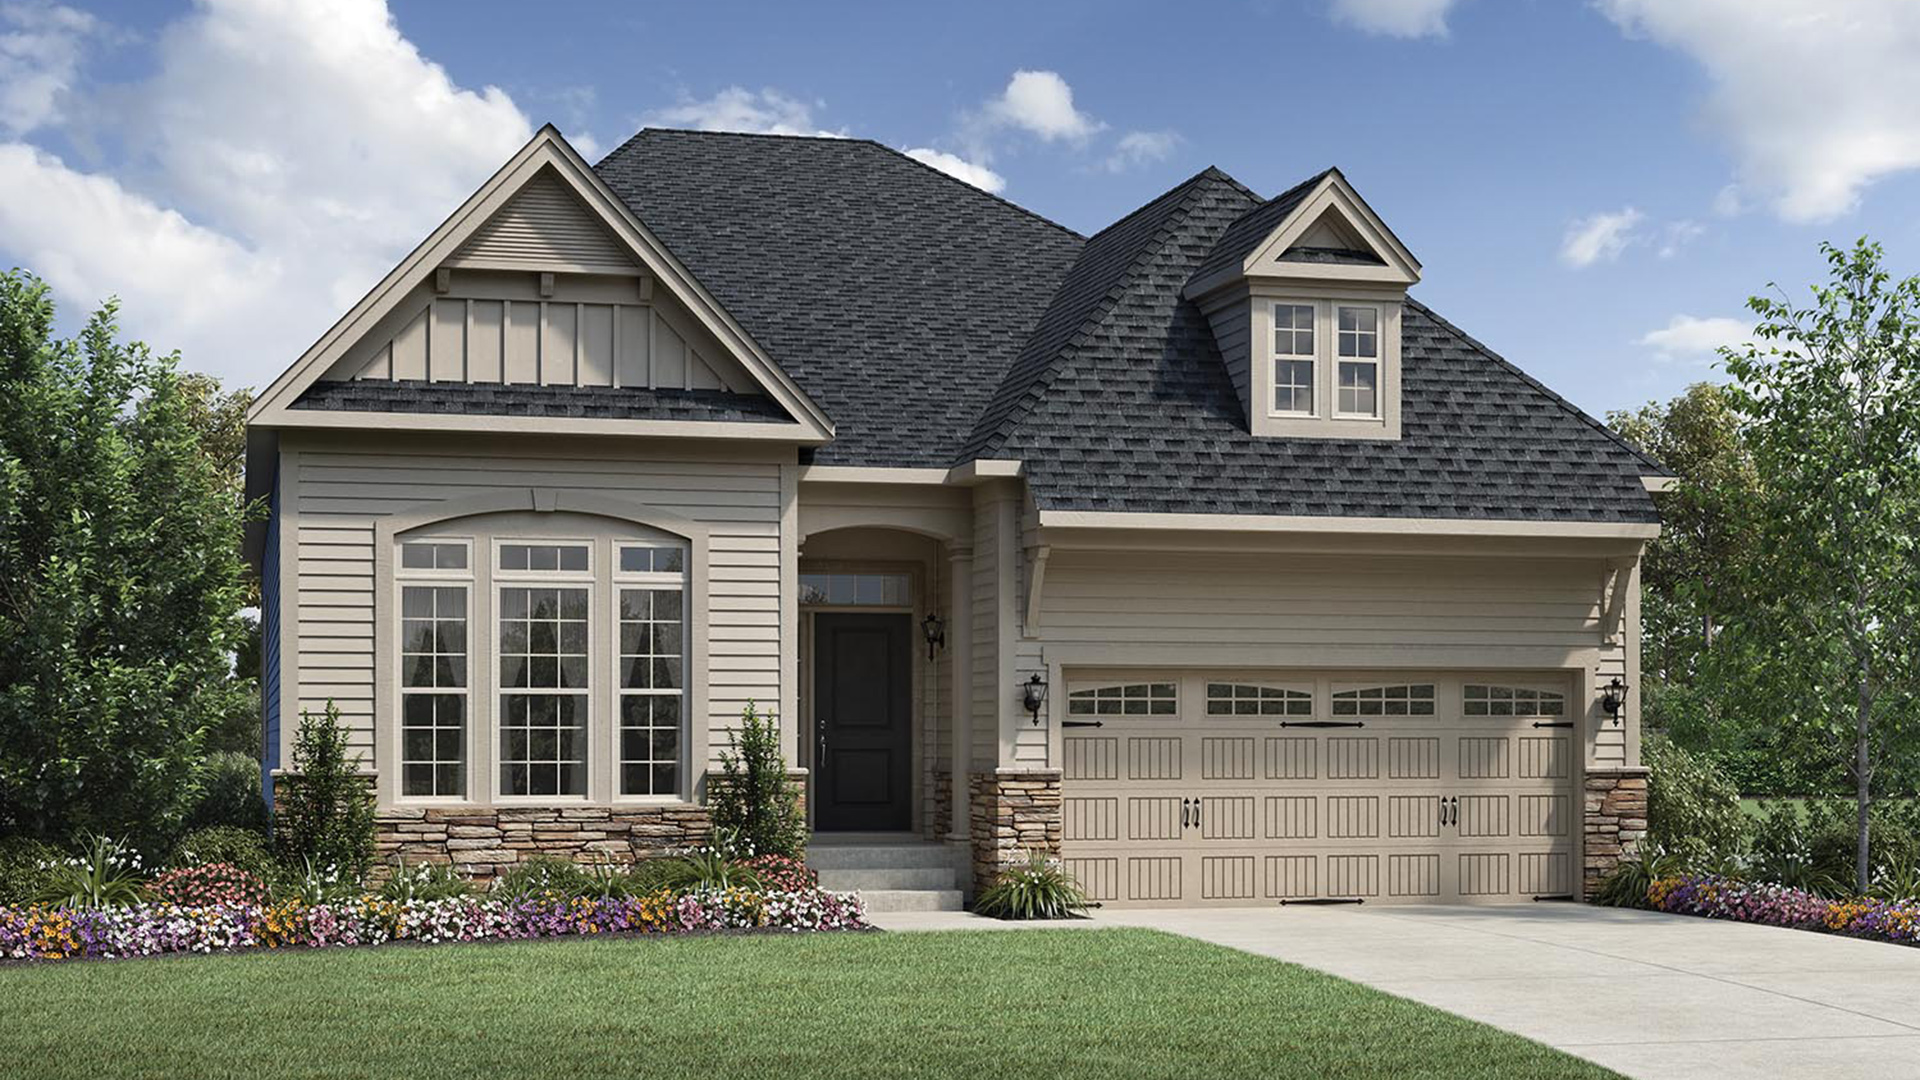 Wake Forest NC New Homes for Sale   Hasentree - Golf Villas Collection